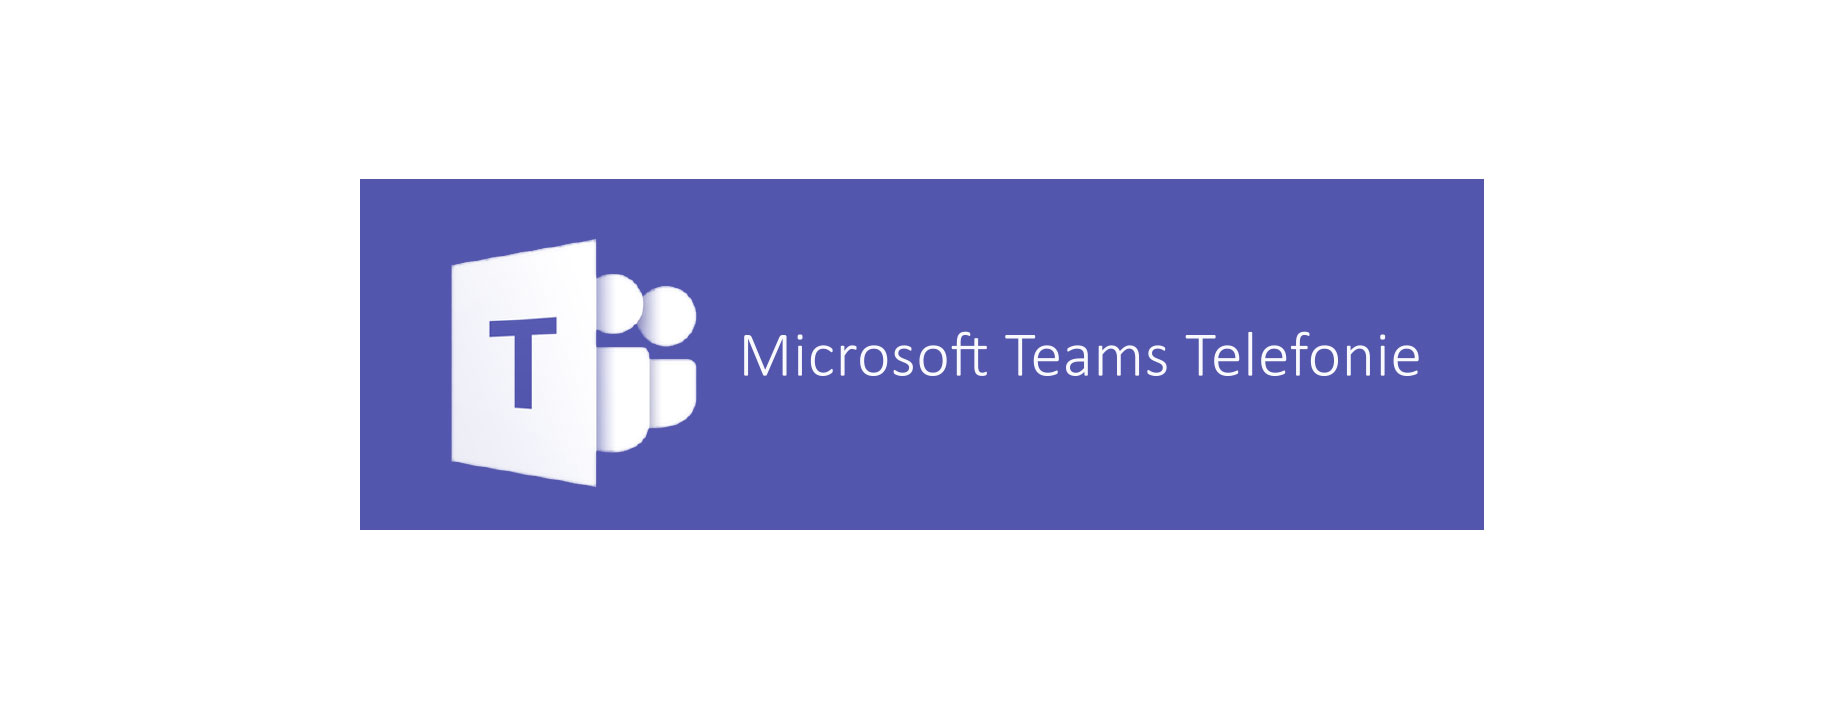 Telefonieren über Microsoft Teams, MS Teams Telefonie